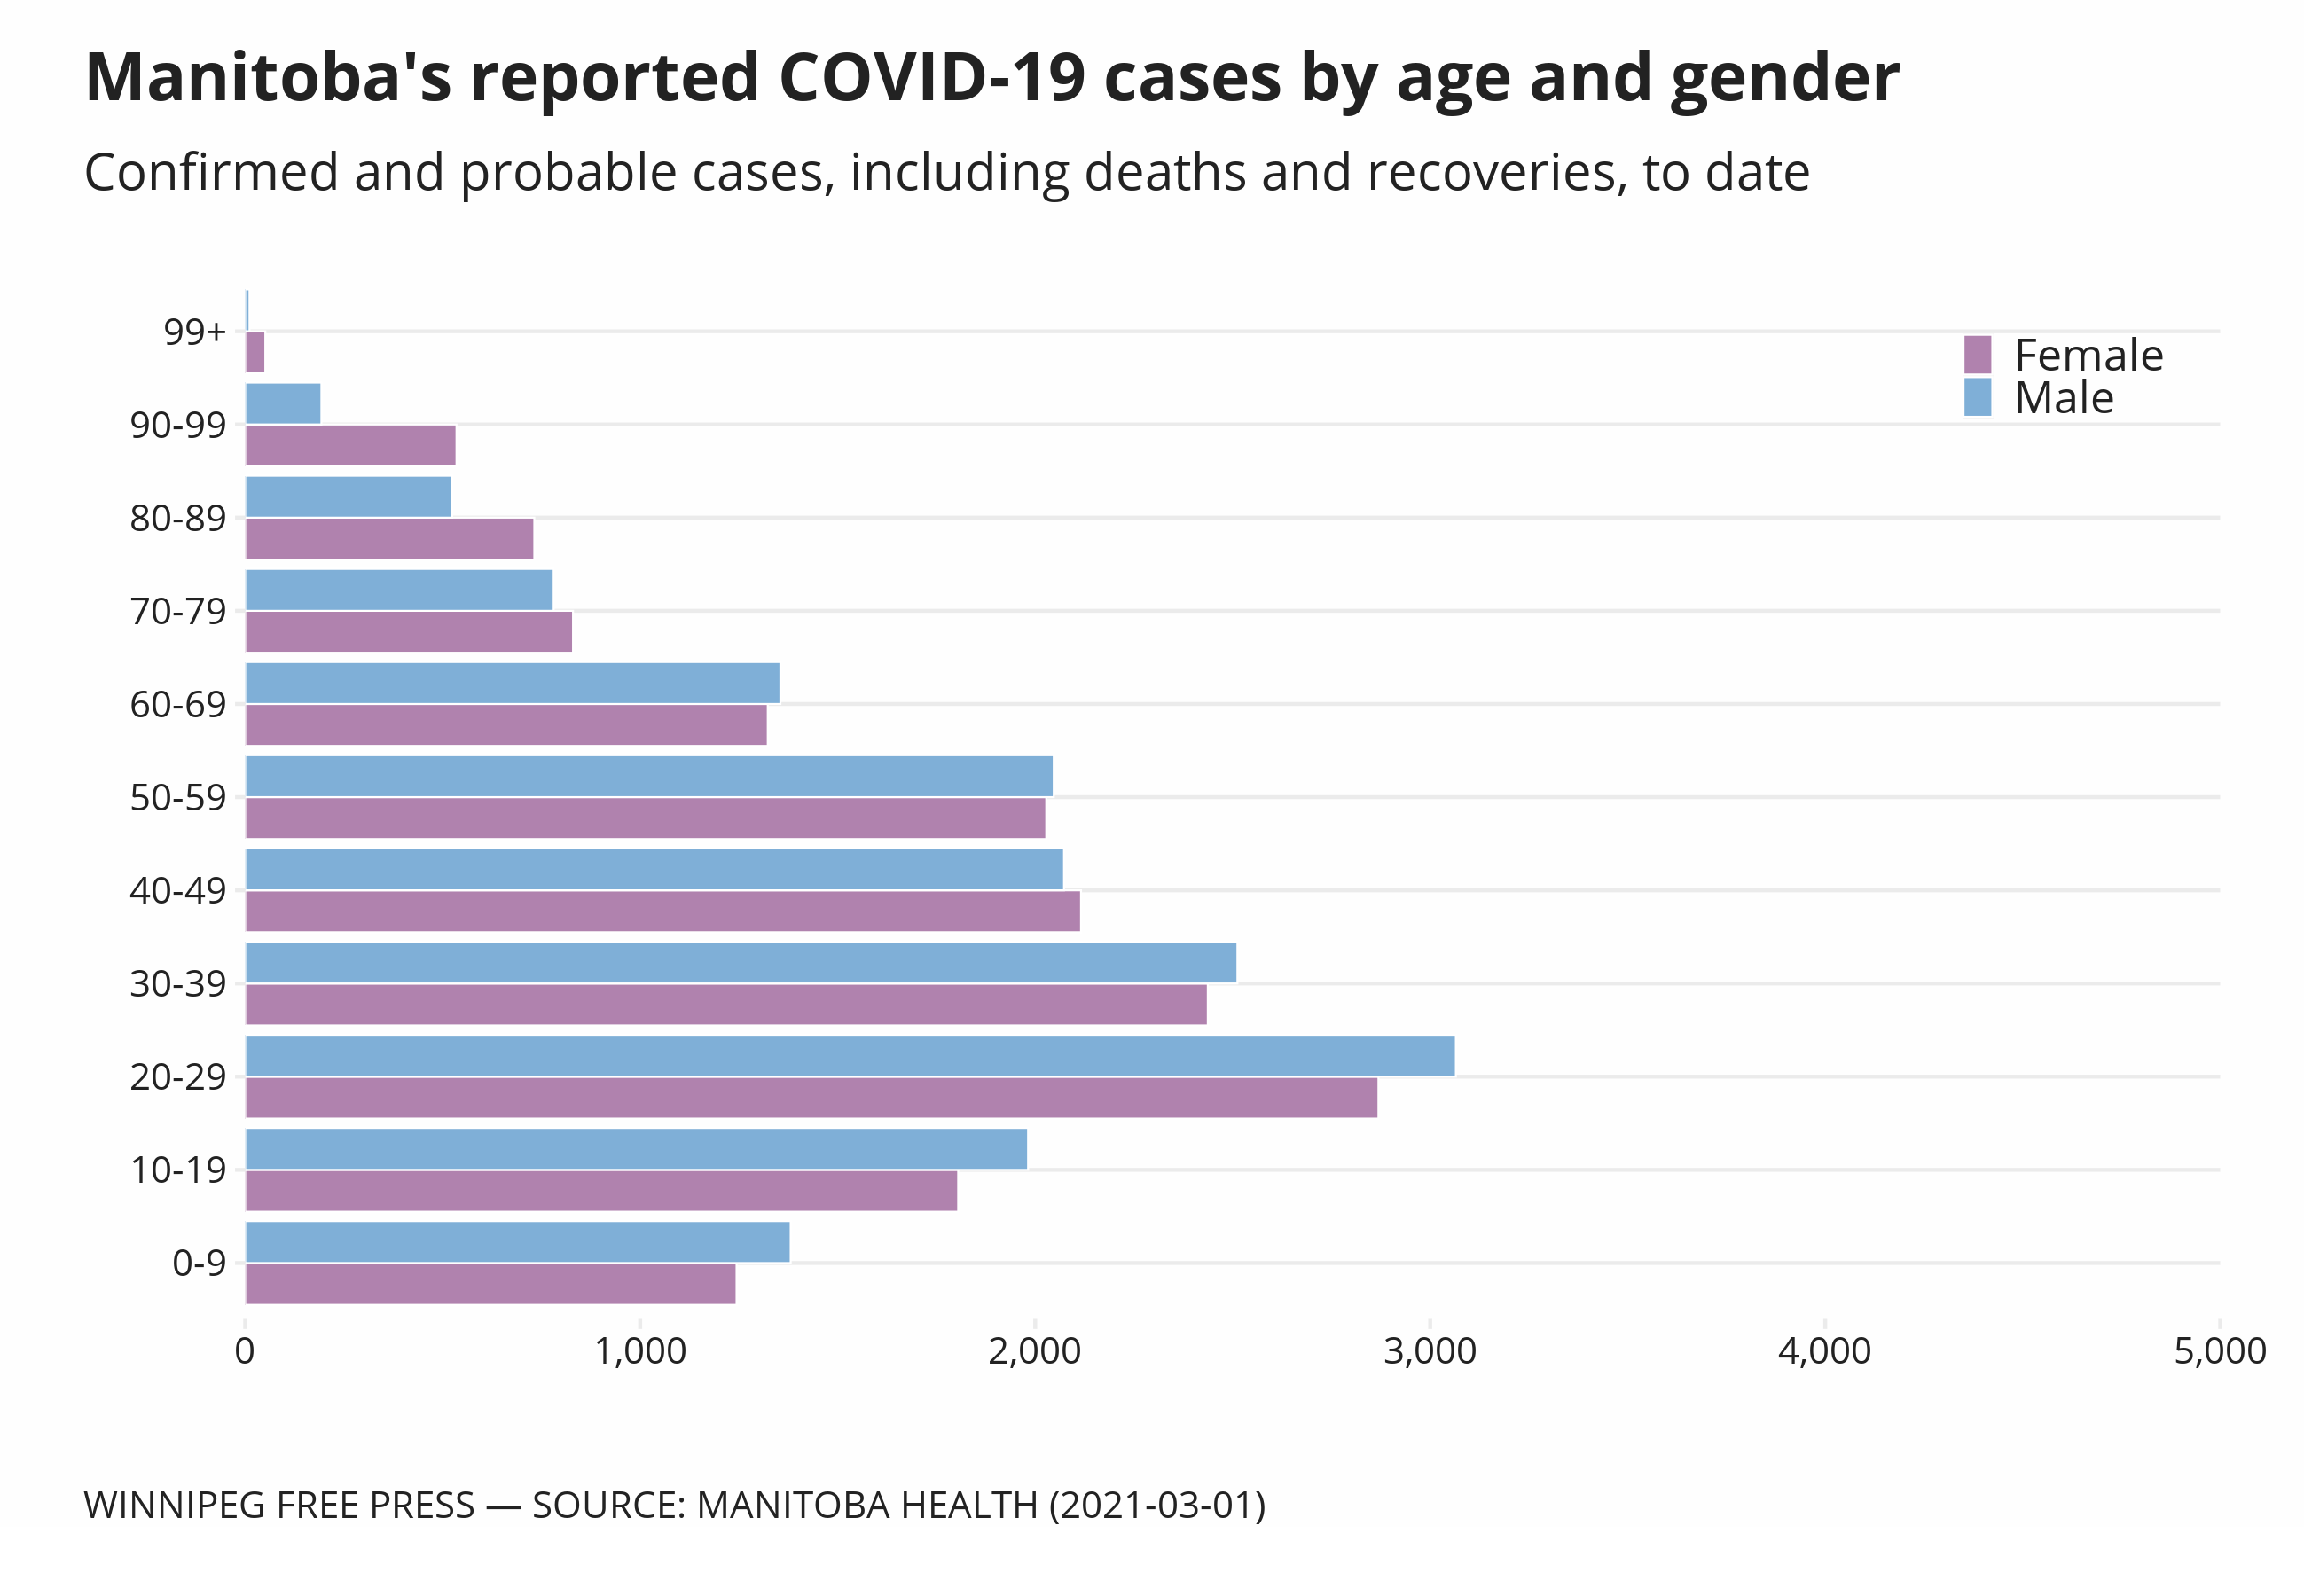 Chart showing age and gender breakdown of reported COVID-19 cases